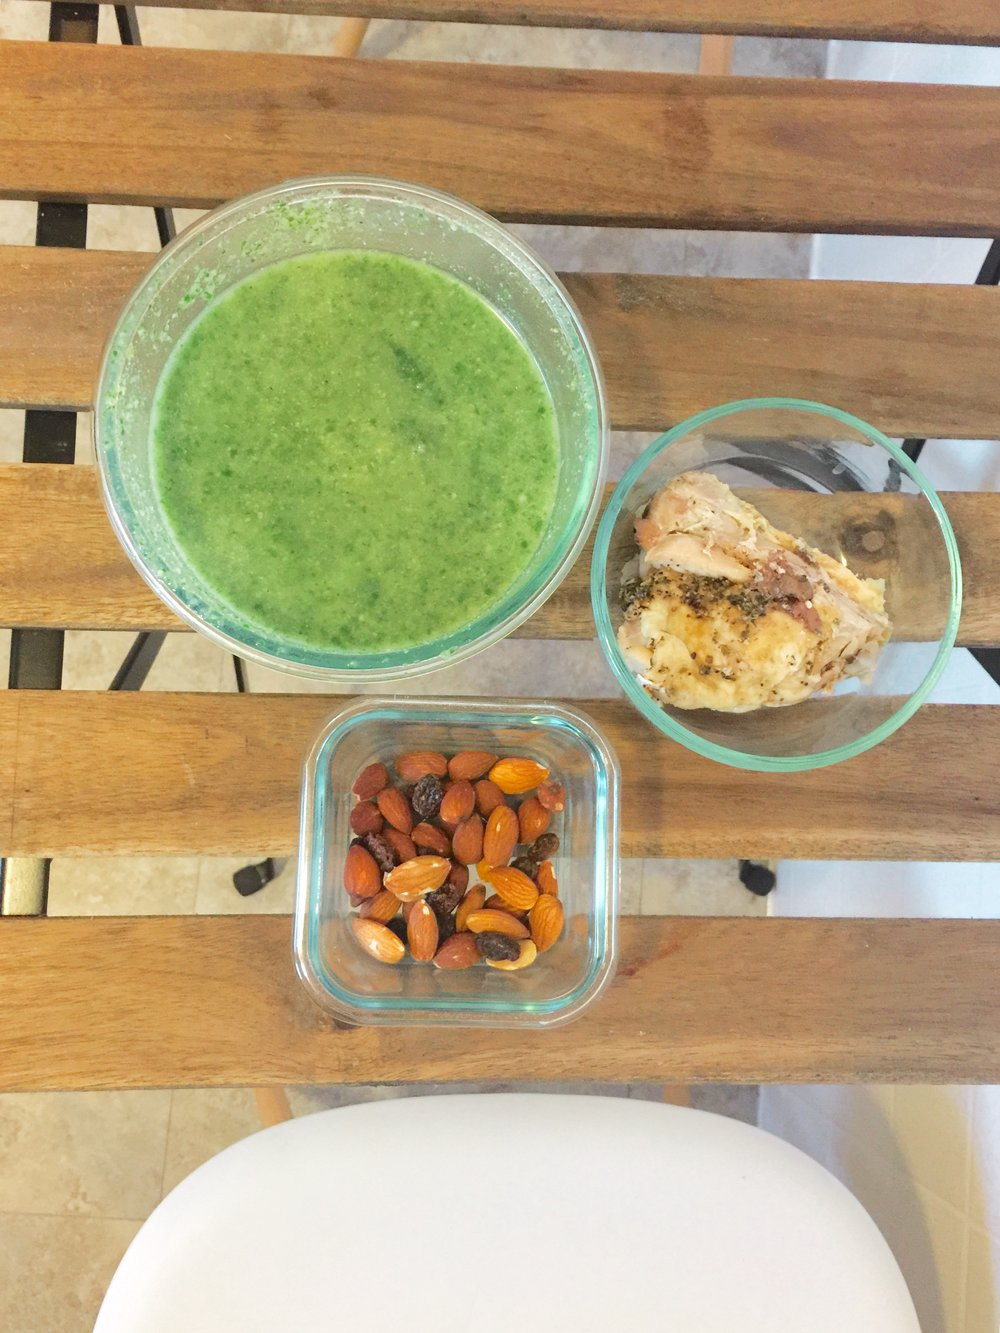 Spinach broccoli coconut cream soup, seasoned chicken thigh, almonds and raisins